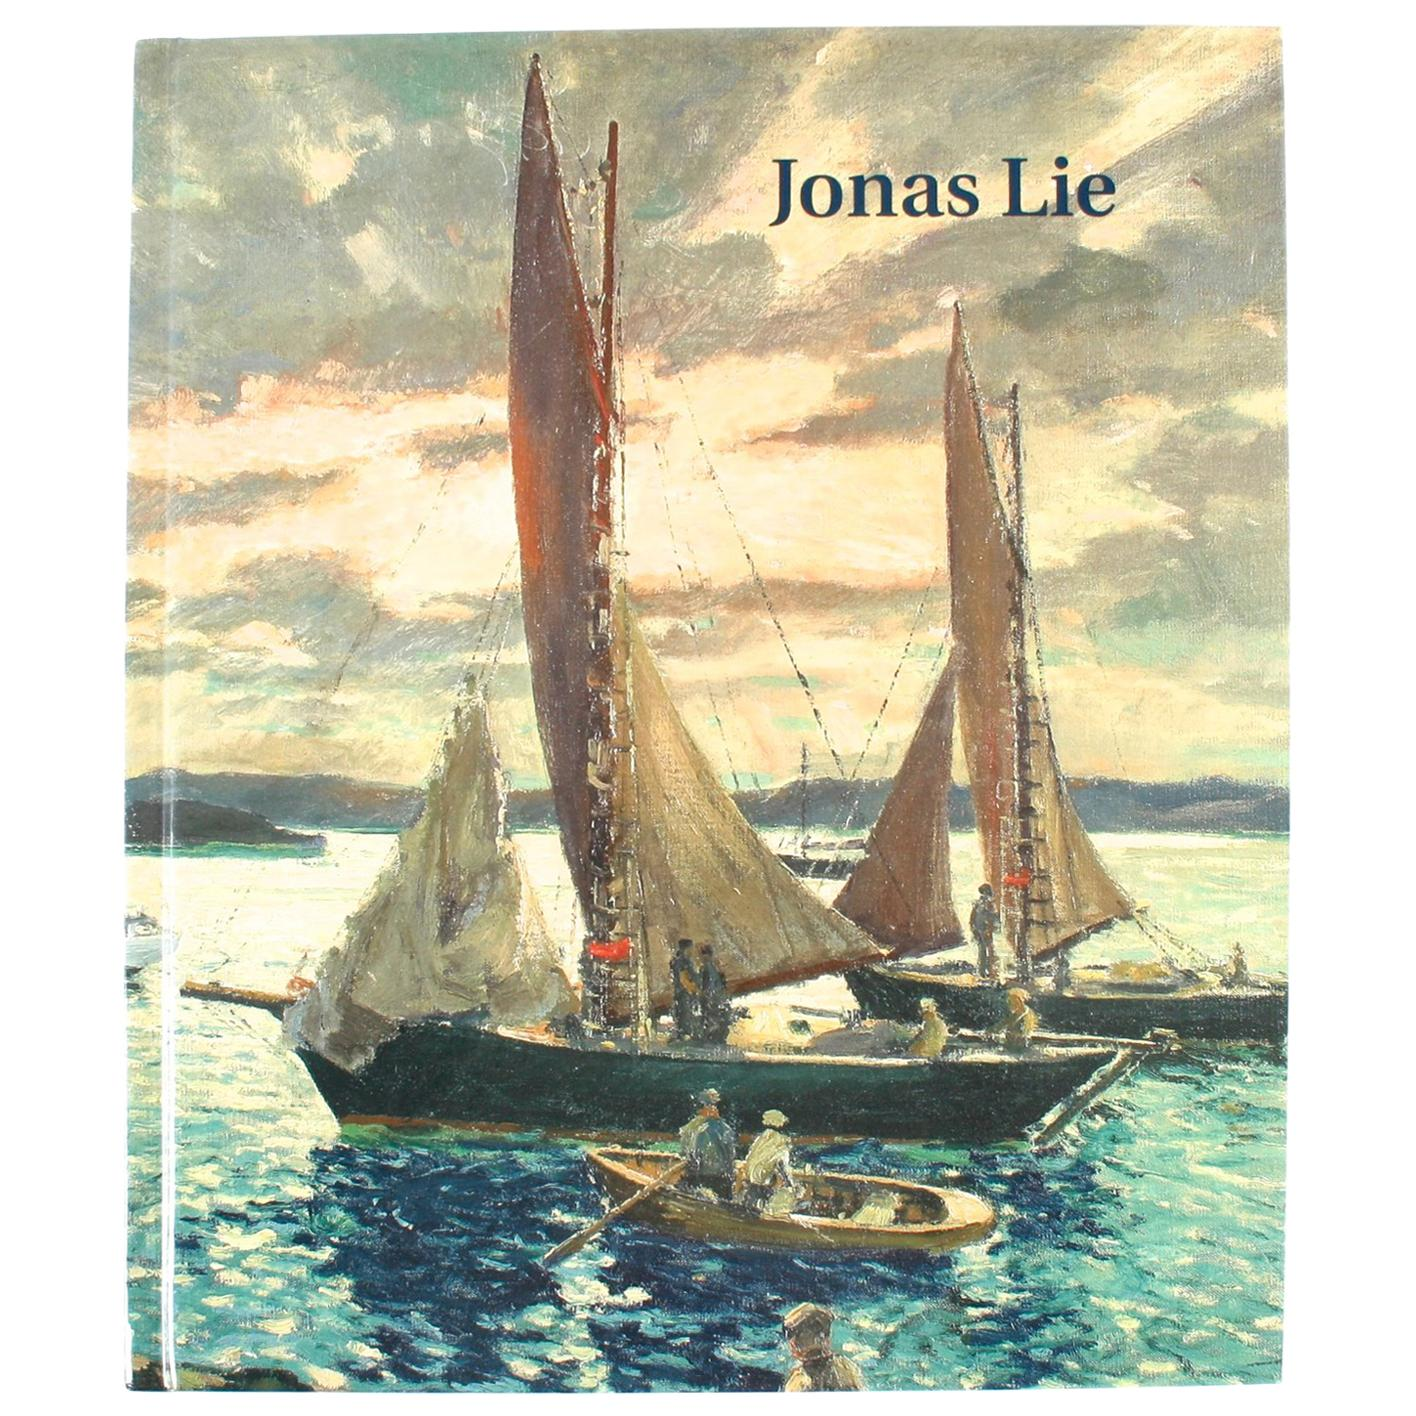 Jonas Lie, by William H. and Carol Lowrey Gerdts, First Edition